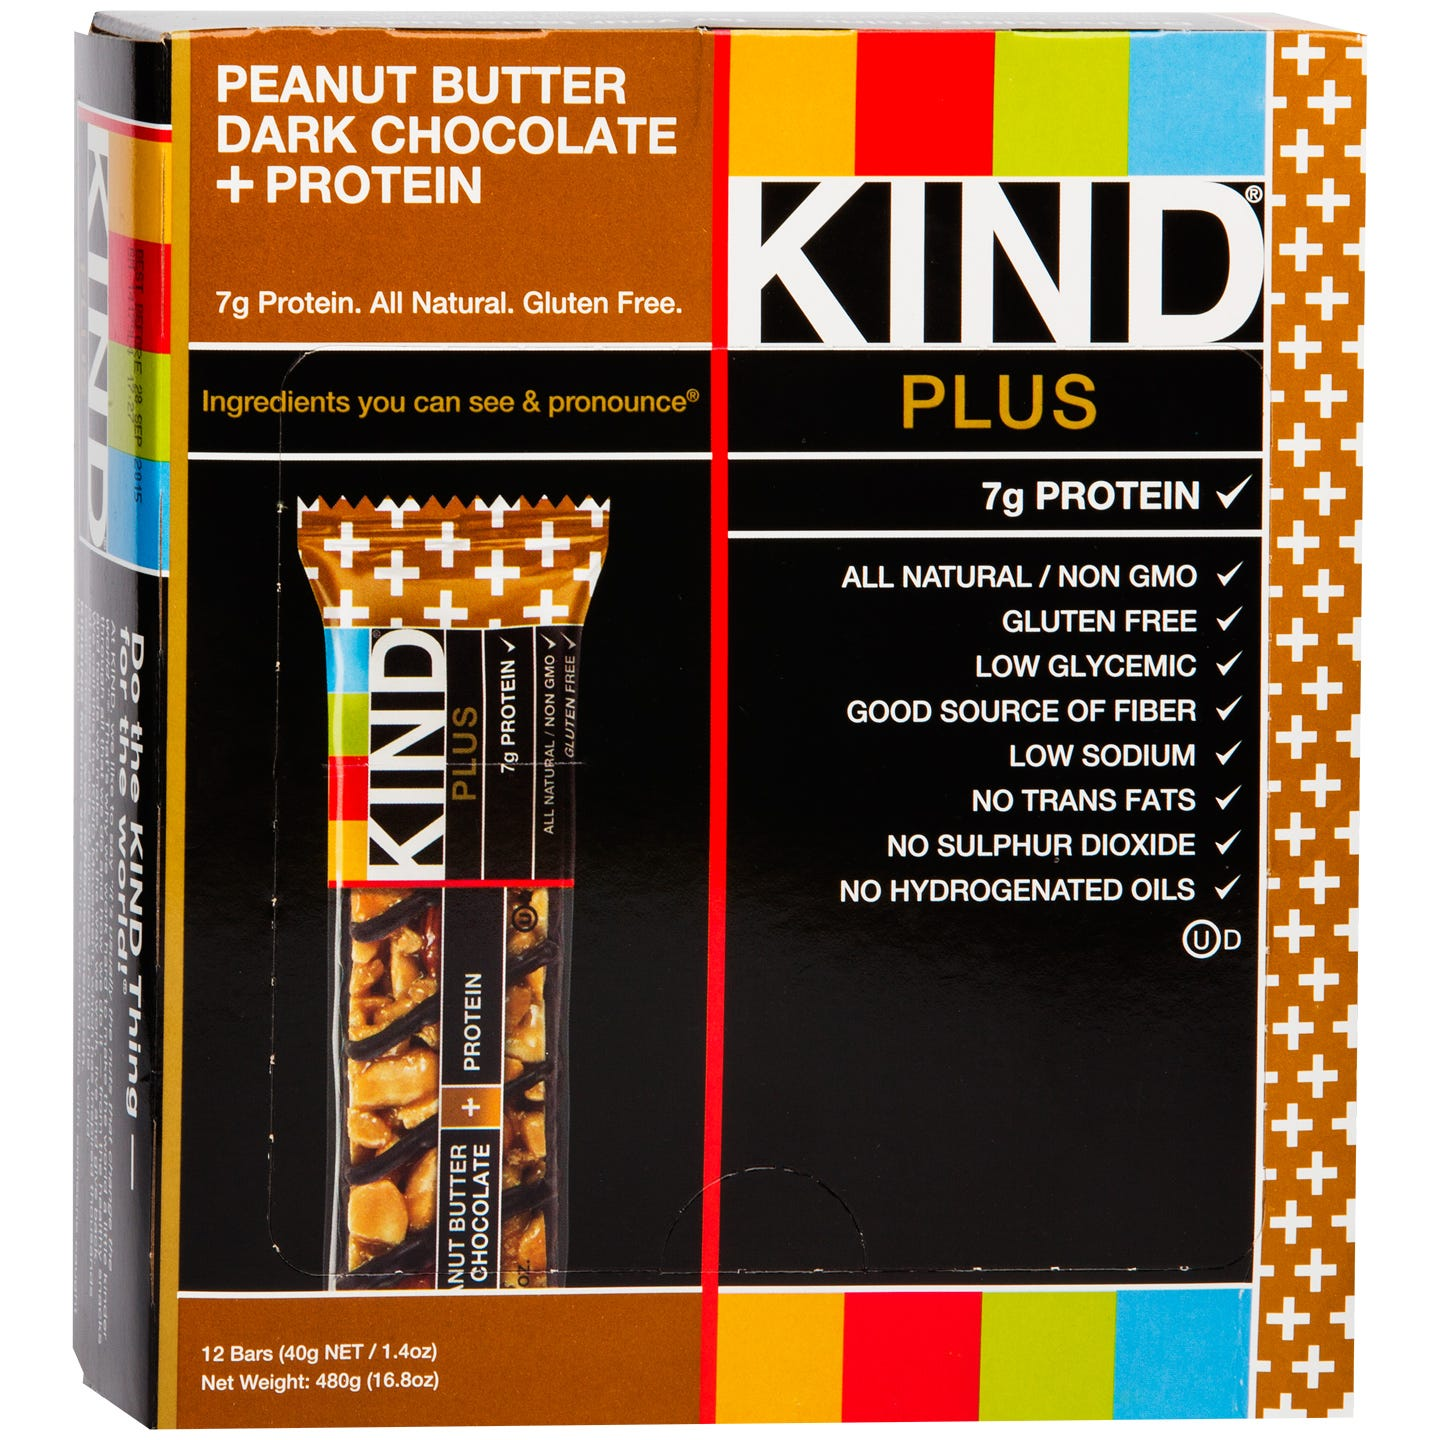 Kind Plus Protein Bars Peanut Butter Dark Chocolate (12 ct) - Rapid Diet Weight Loss Products Shop